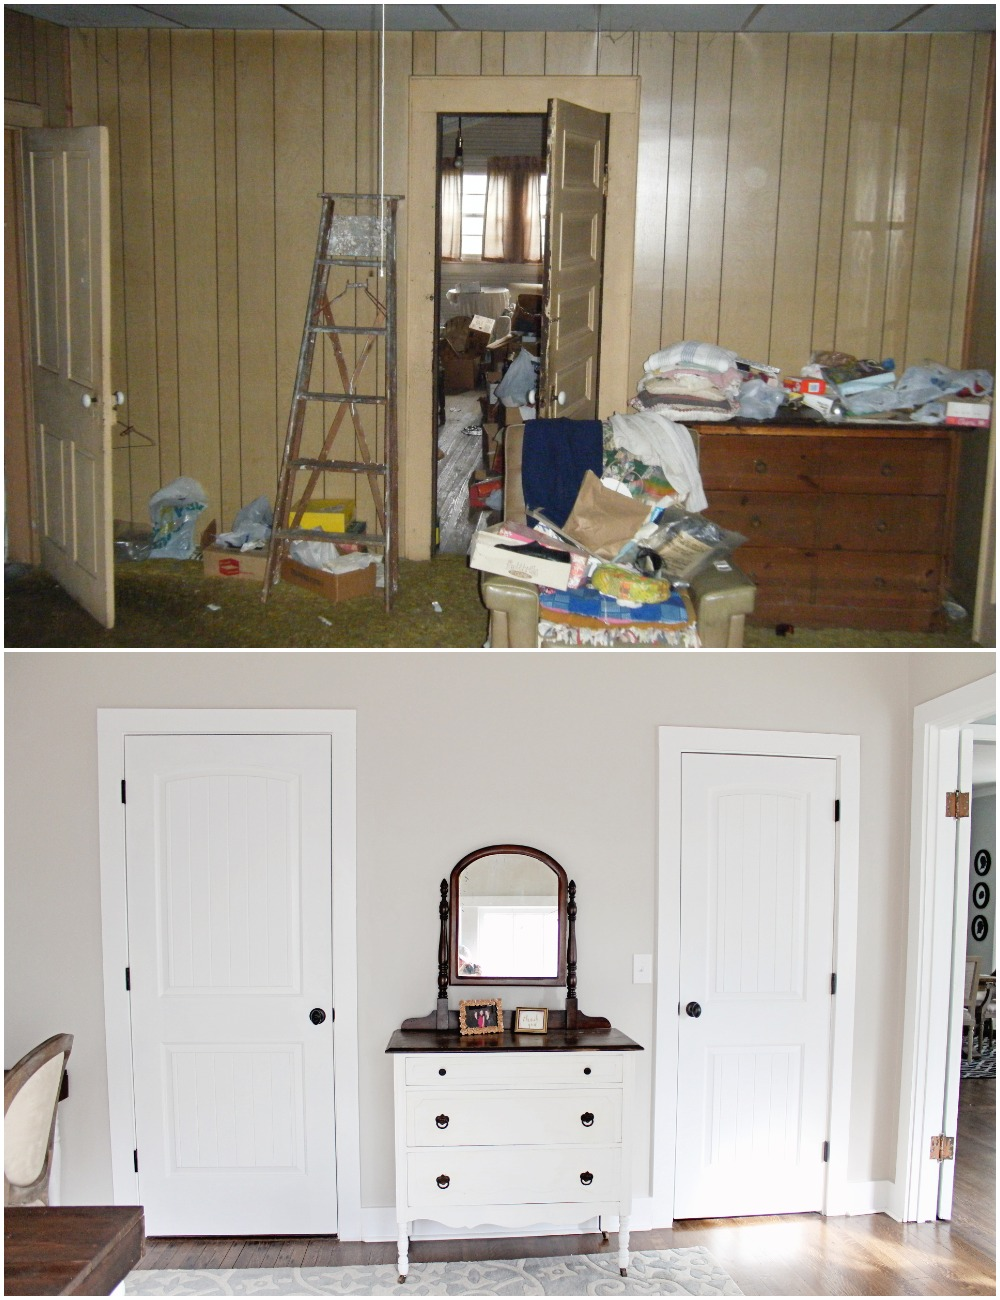 Elizabeth Burns Design  Budget-Friendly Fixer Upper Farmhouse Before and After House Flip - DIY Office with Double Desk Shared Workspace and French Doors - Sherwin Williams Agreeable Gray (2).jpg